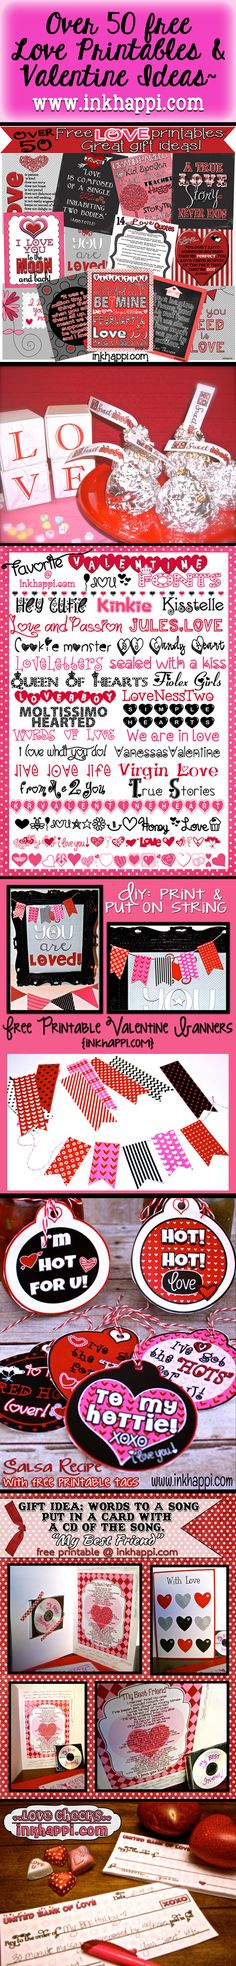 Over 50 free Love Printables and valentine ideas!